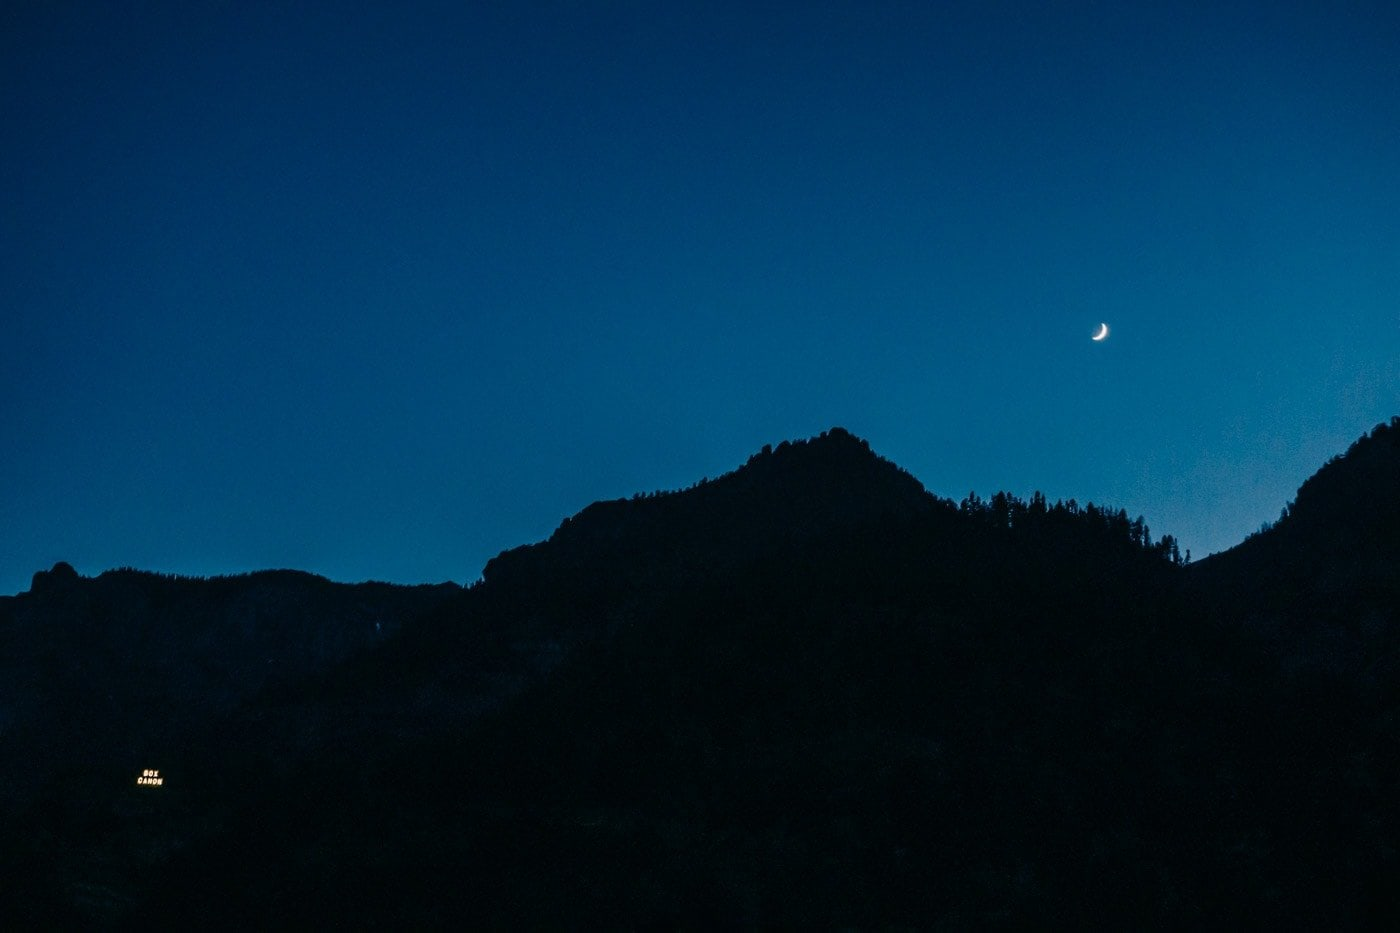 Night shot of the box canyon sign in Ouray Colorado